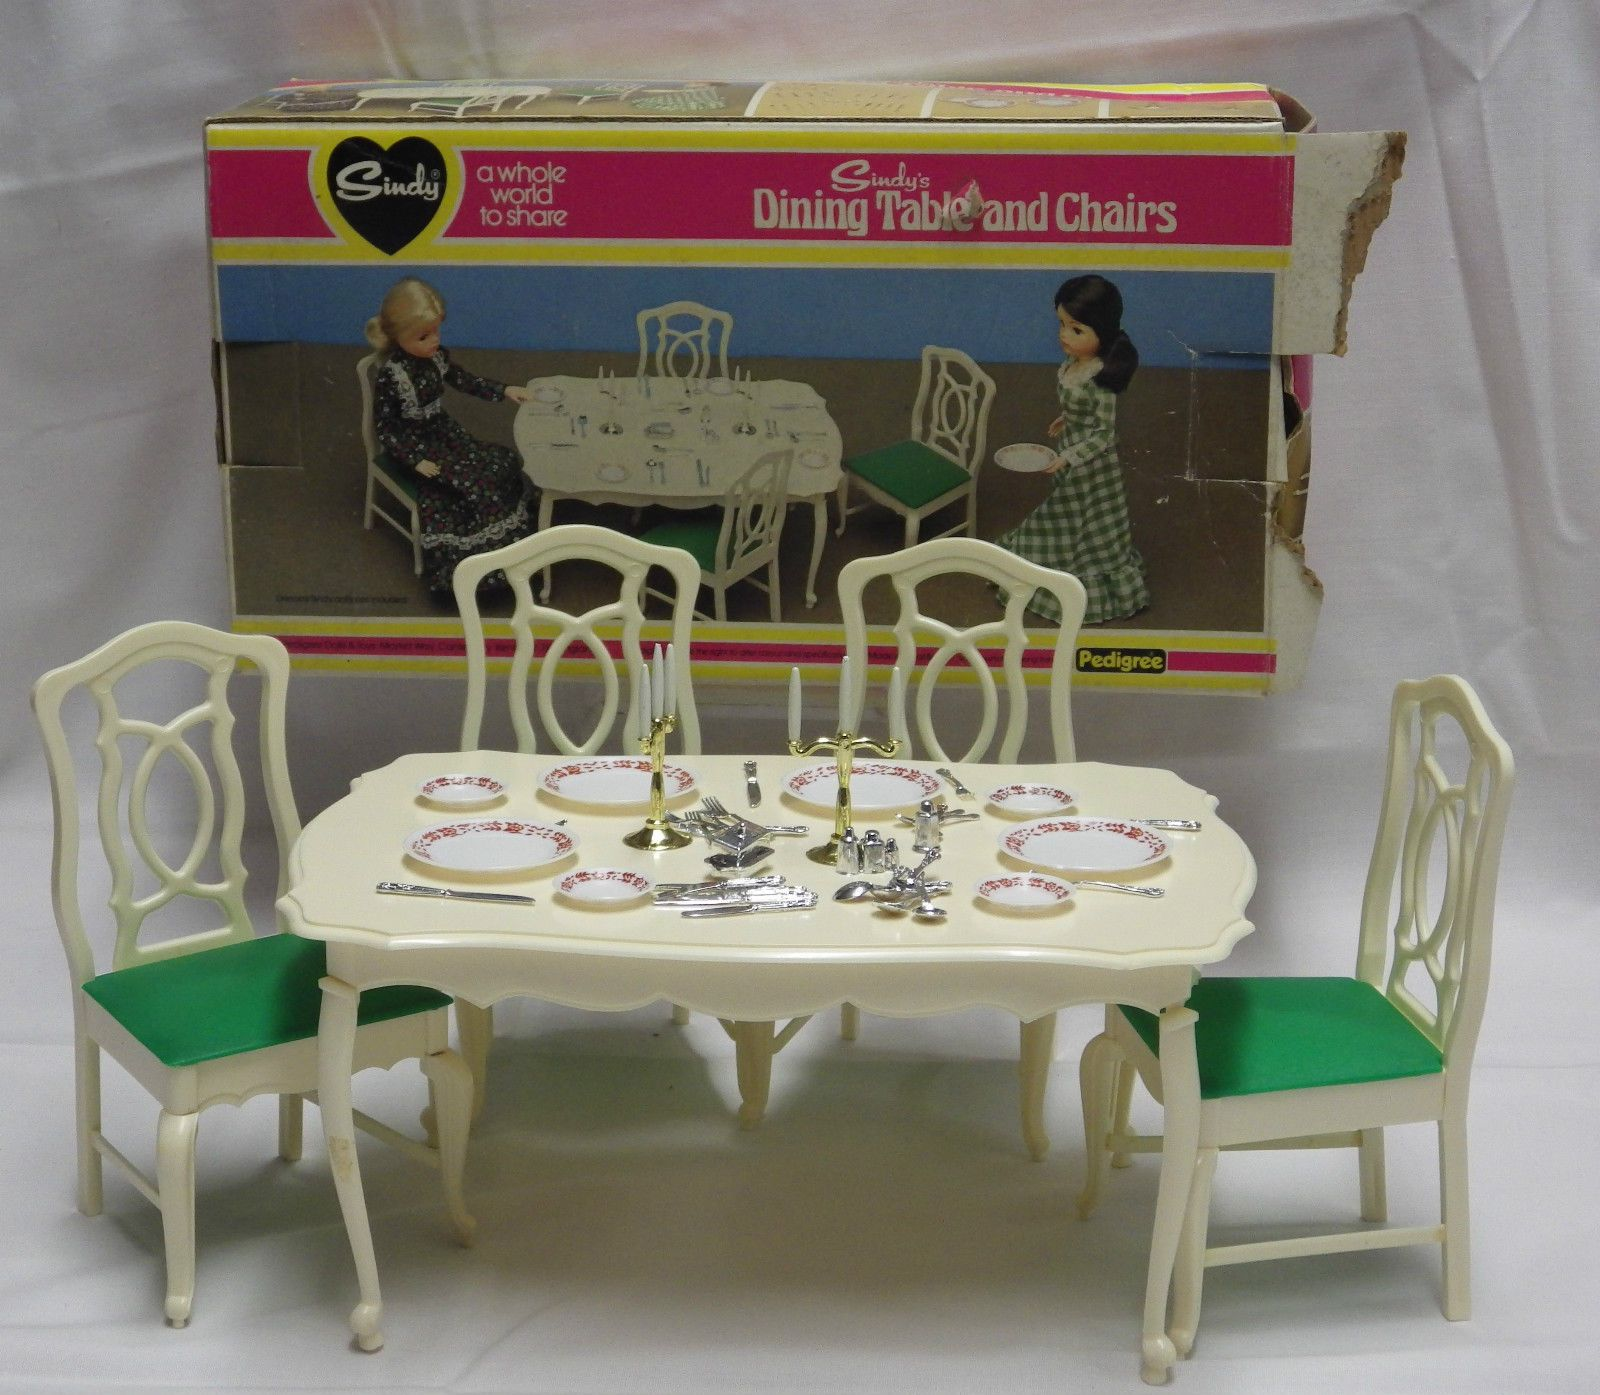 Vintage 60s 70s Sindy Dining Table and Chairs w Accessories Boxed